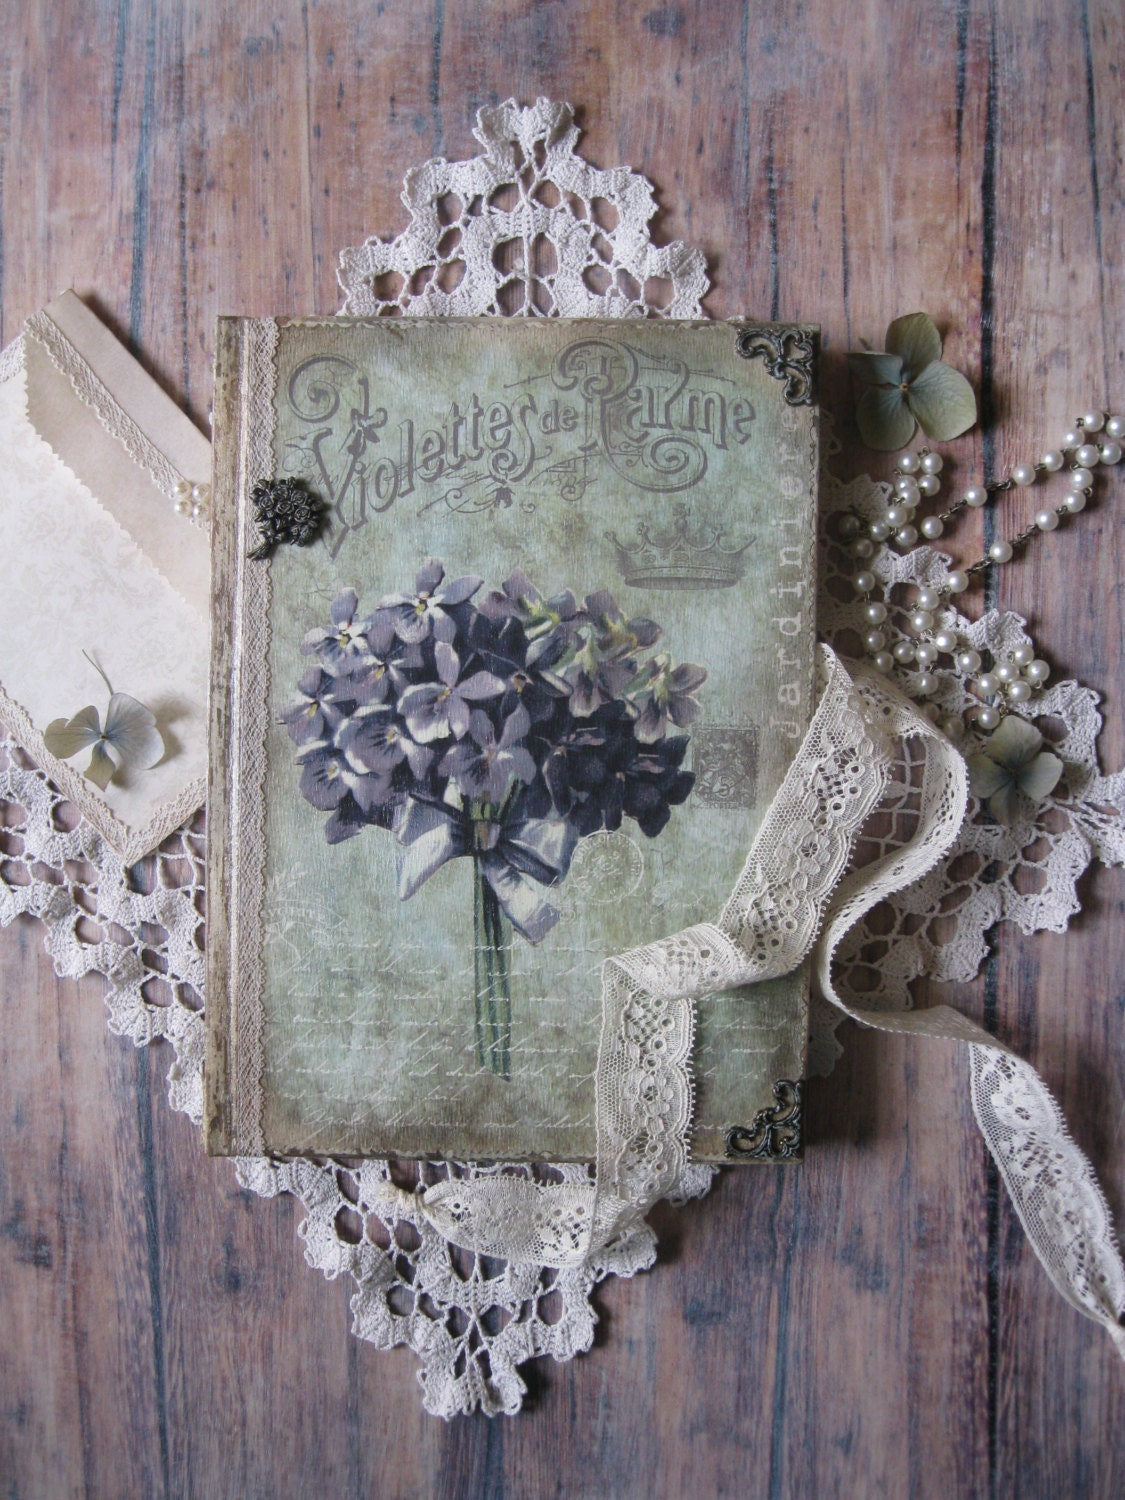 Violet diary journal notebook vintage style diary vintage